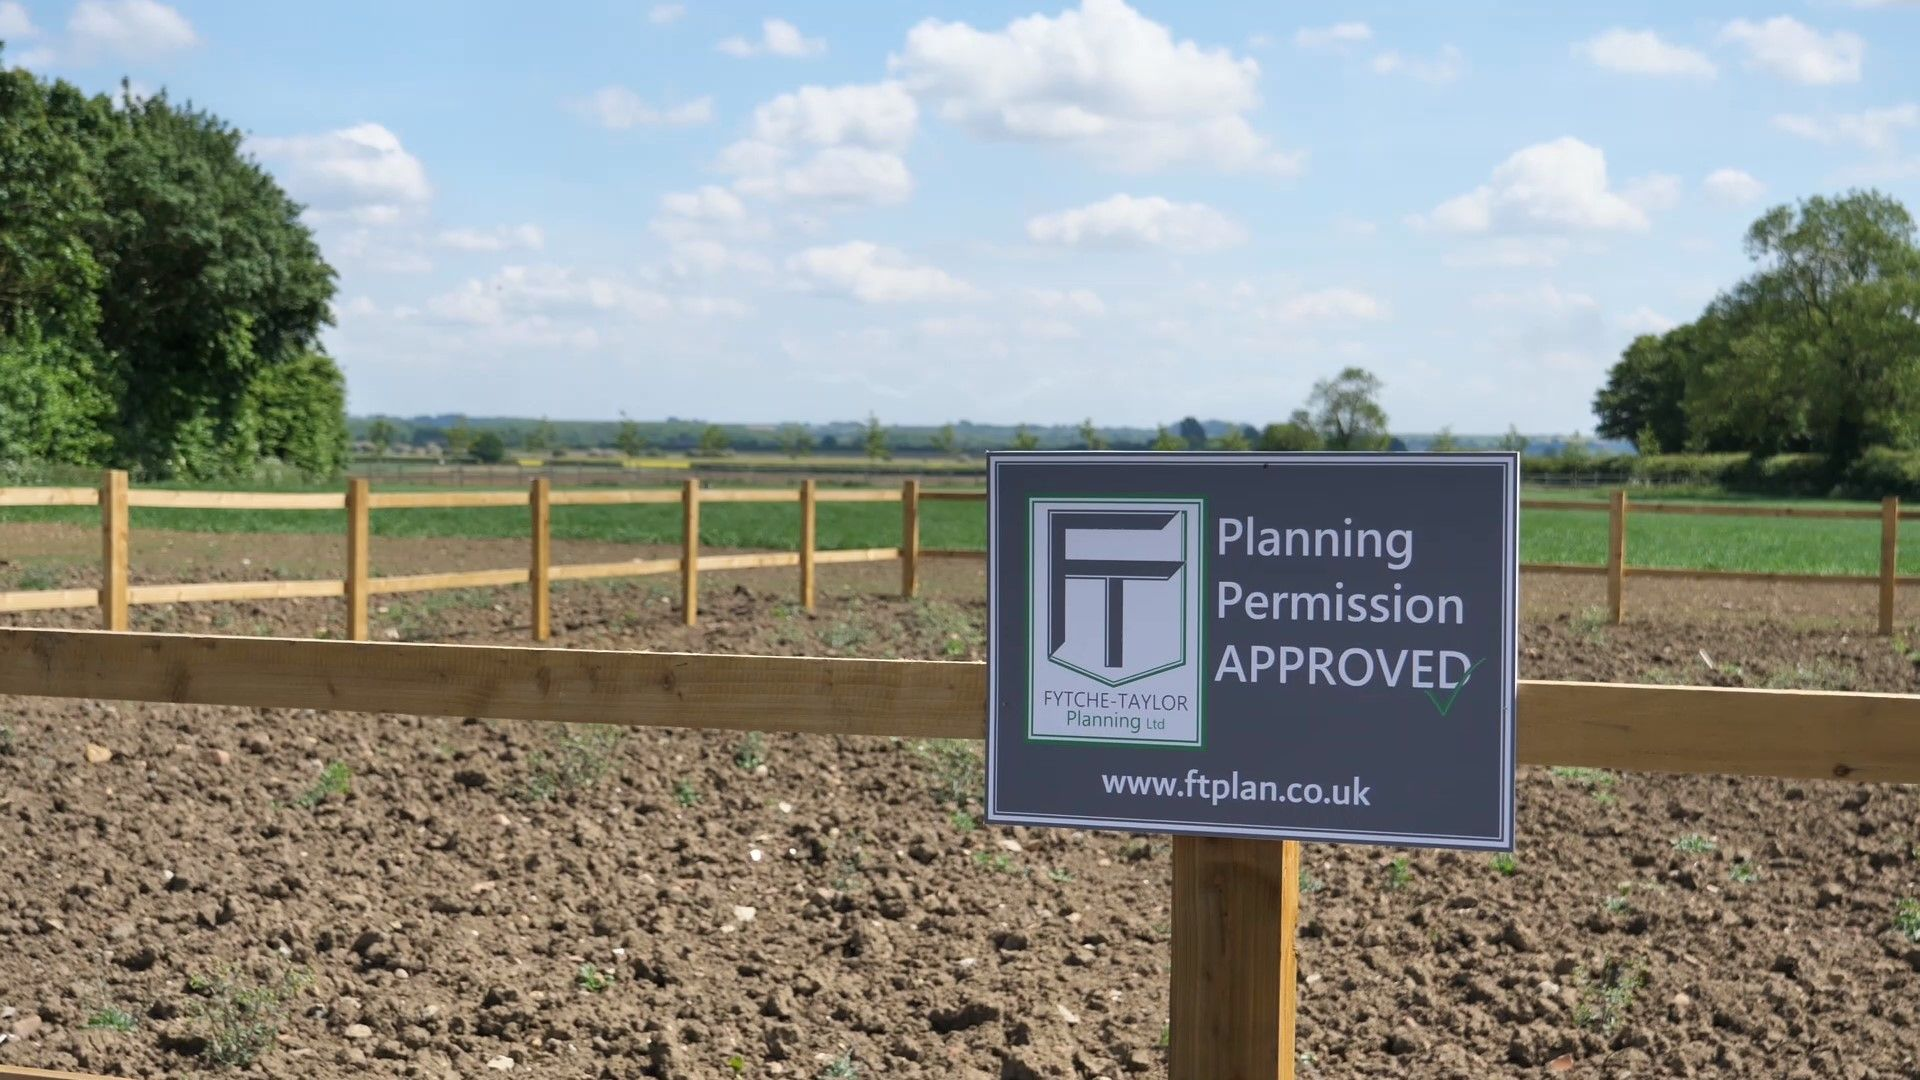 Another planning application approved. Looking for a planning consultant in Lincolnshire? Contact us today